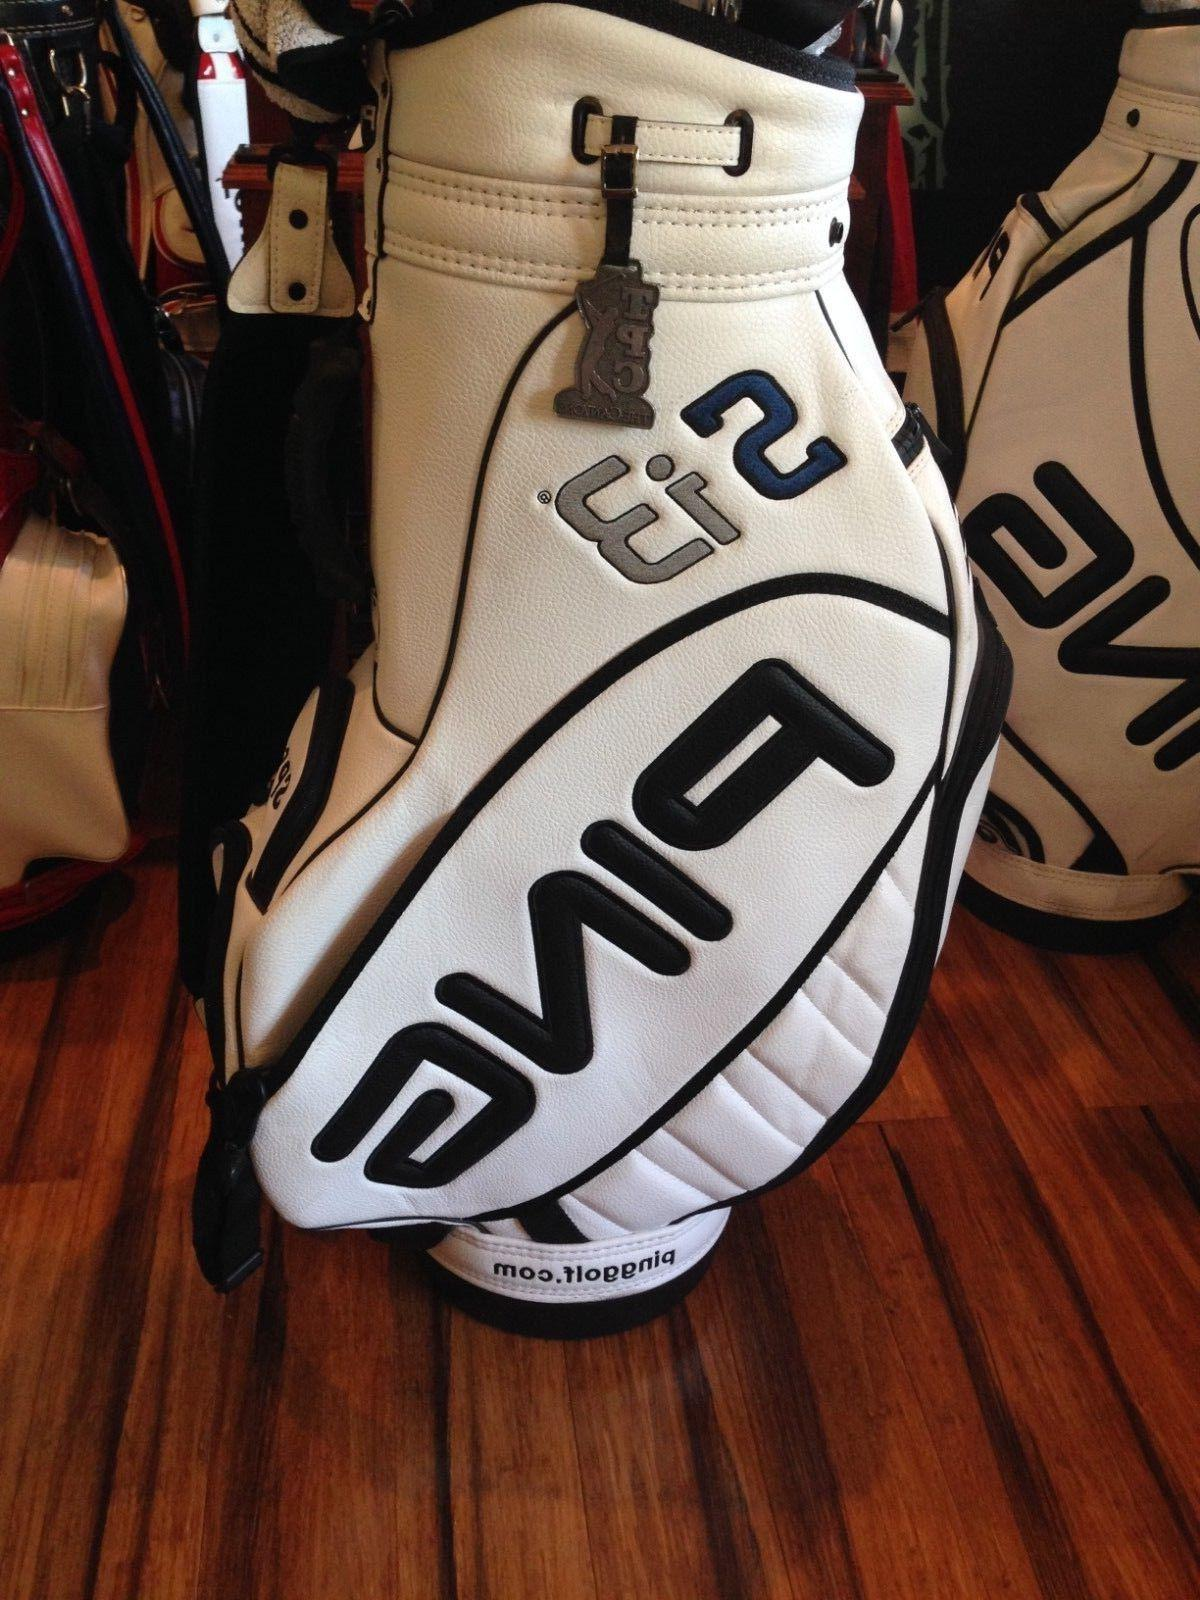 New Ping Staff Bag i3+ cover